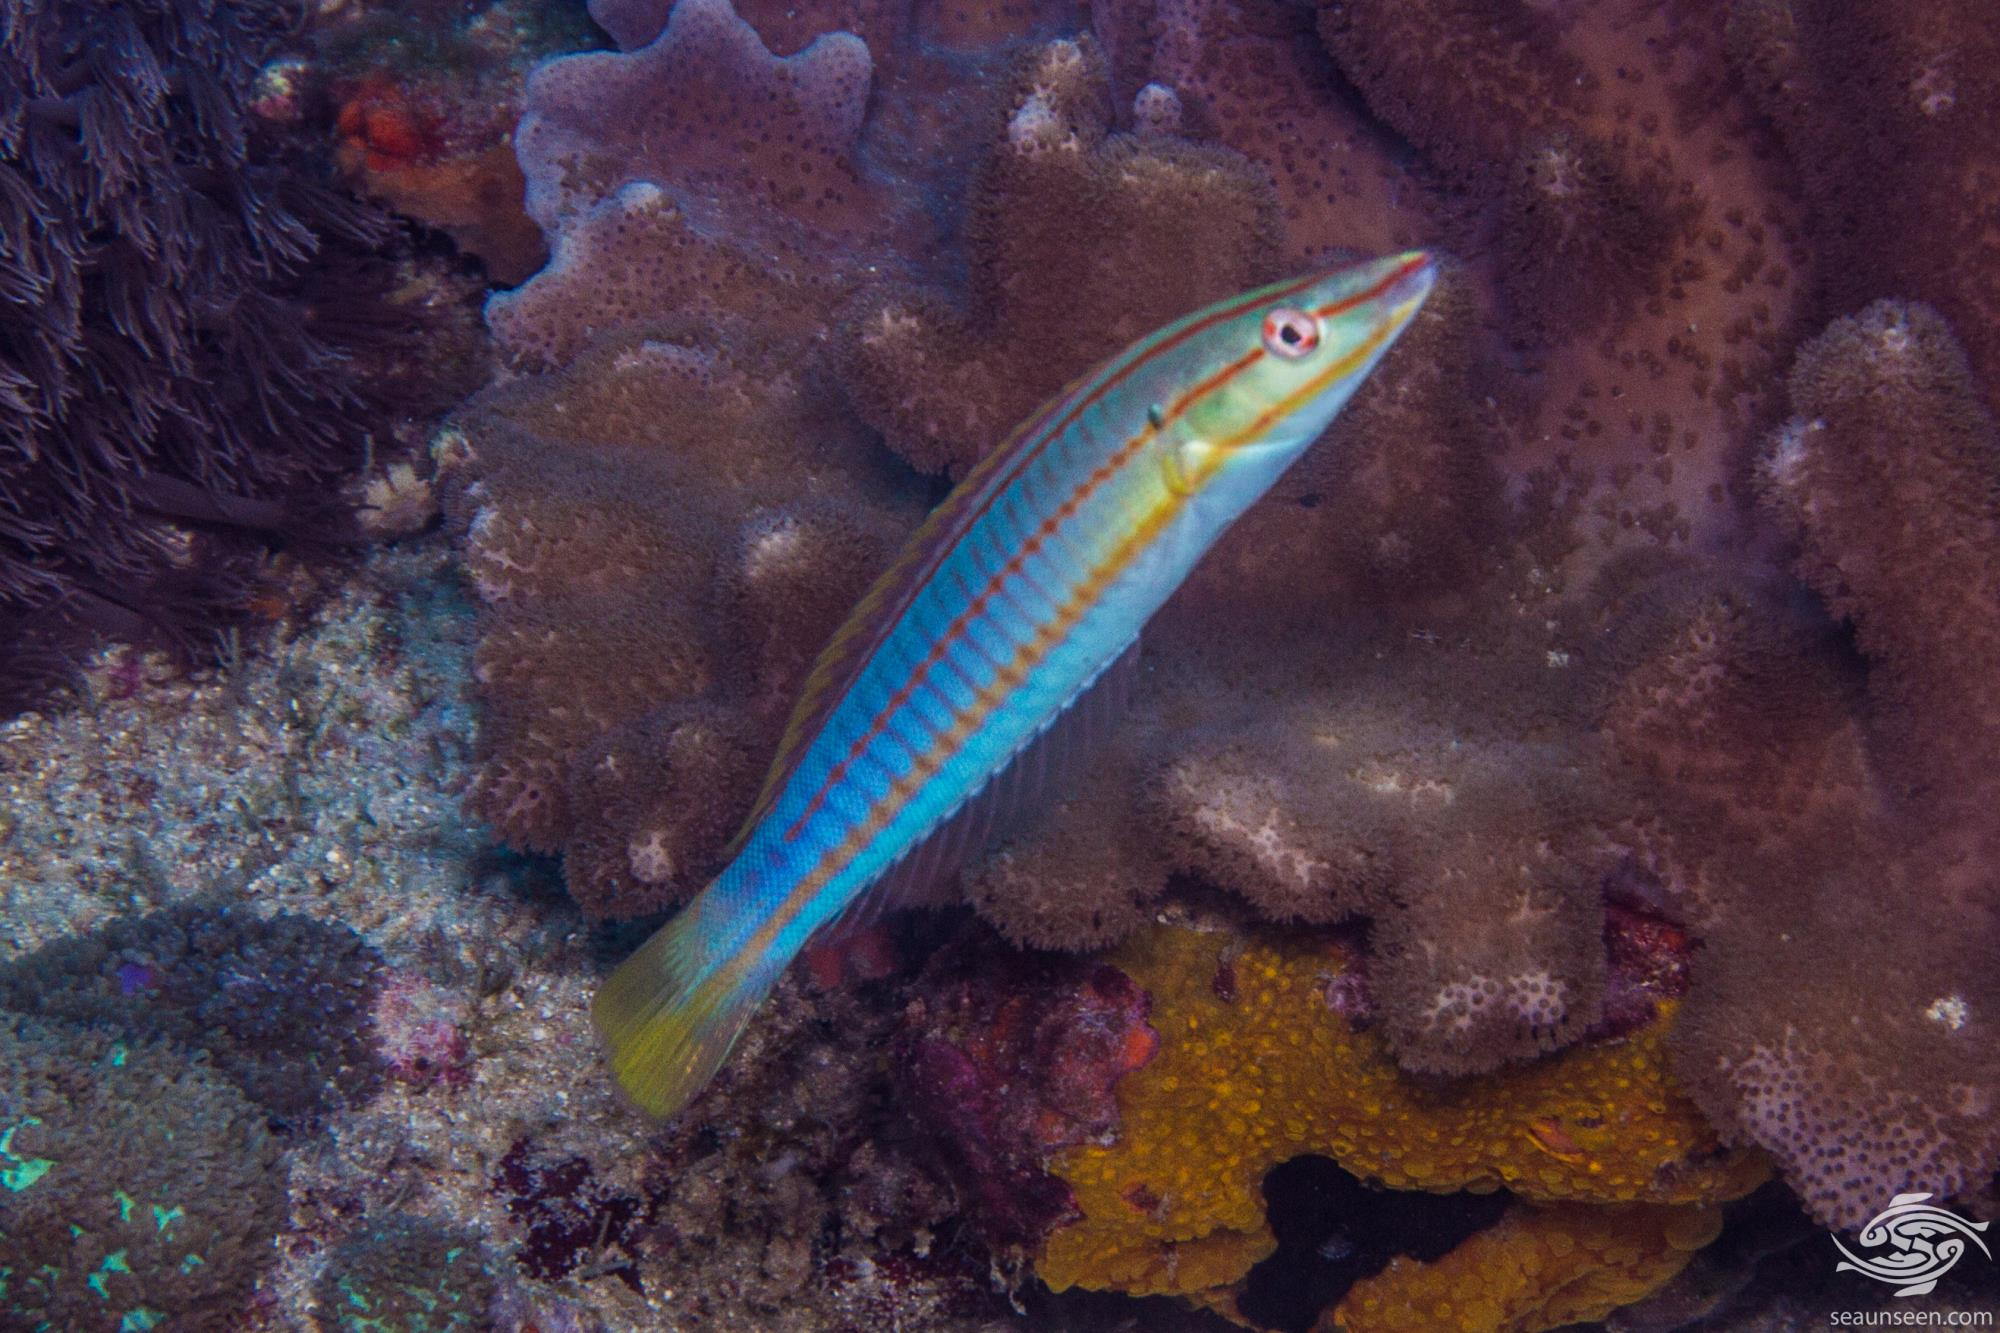 Pastel Ring Wrasse (Hologymnosus doliatus) is also known as the Candy cane wrasse, Longface wrasse, Narrow-banded wrasse, Ringed rainbowfish and simply the Ringed wrasse